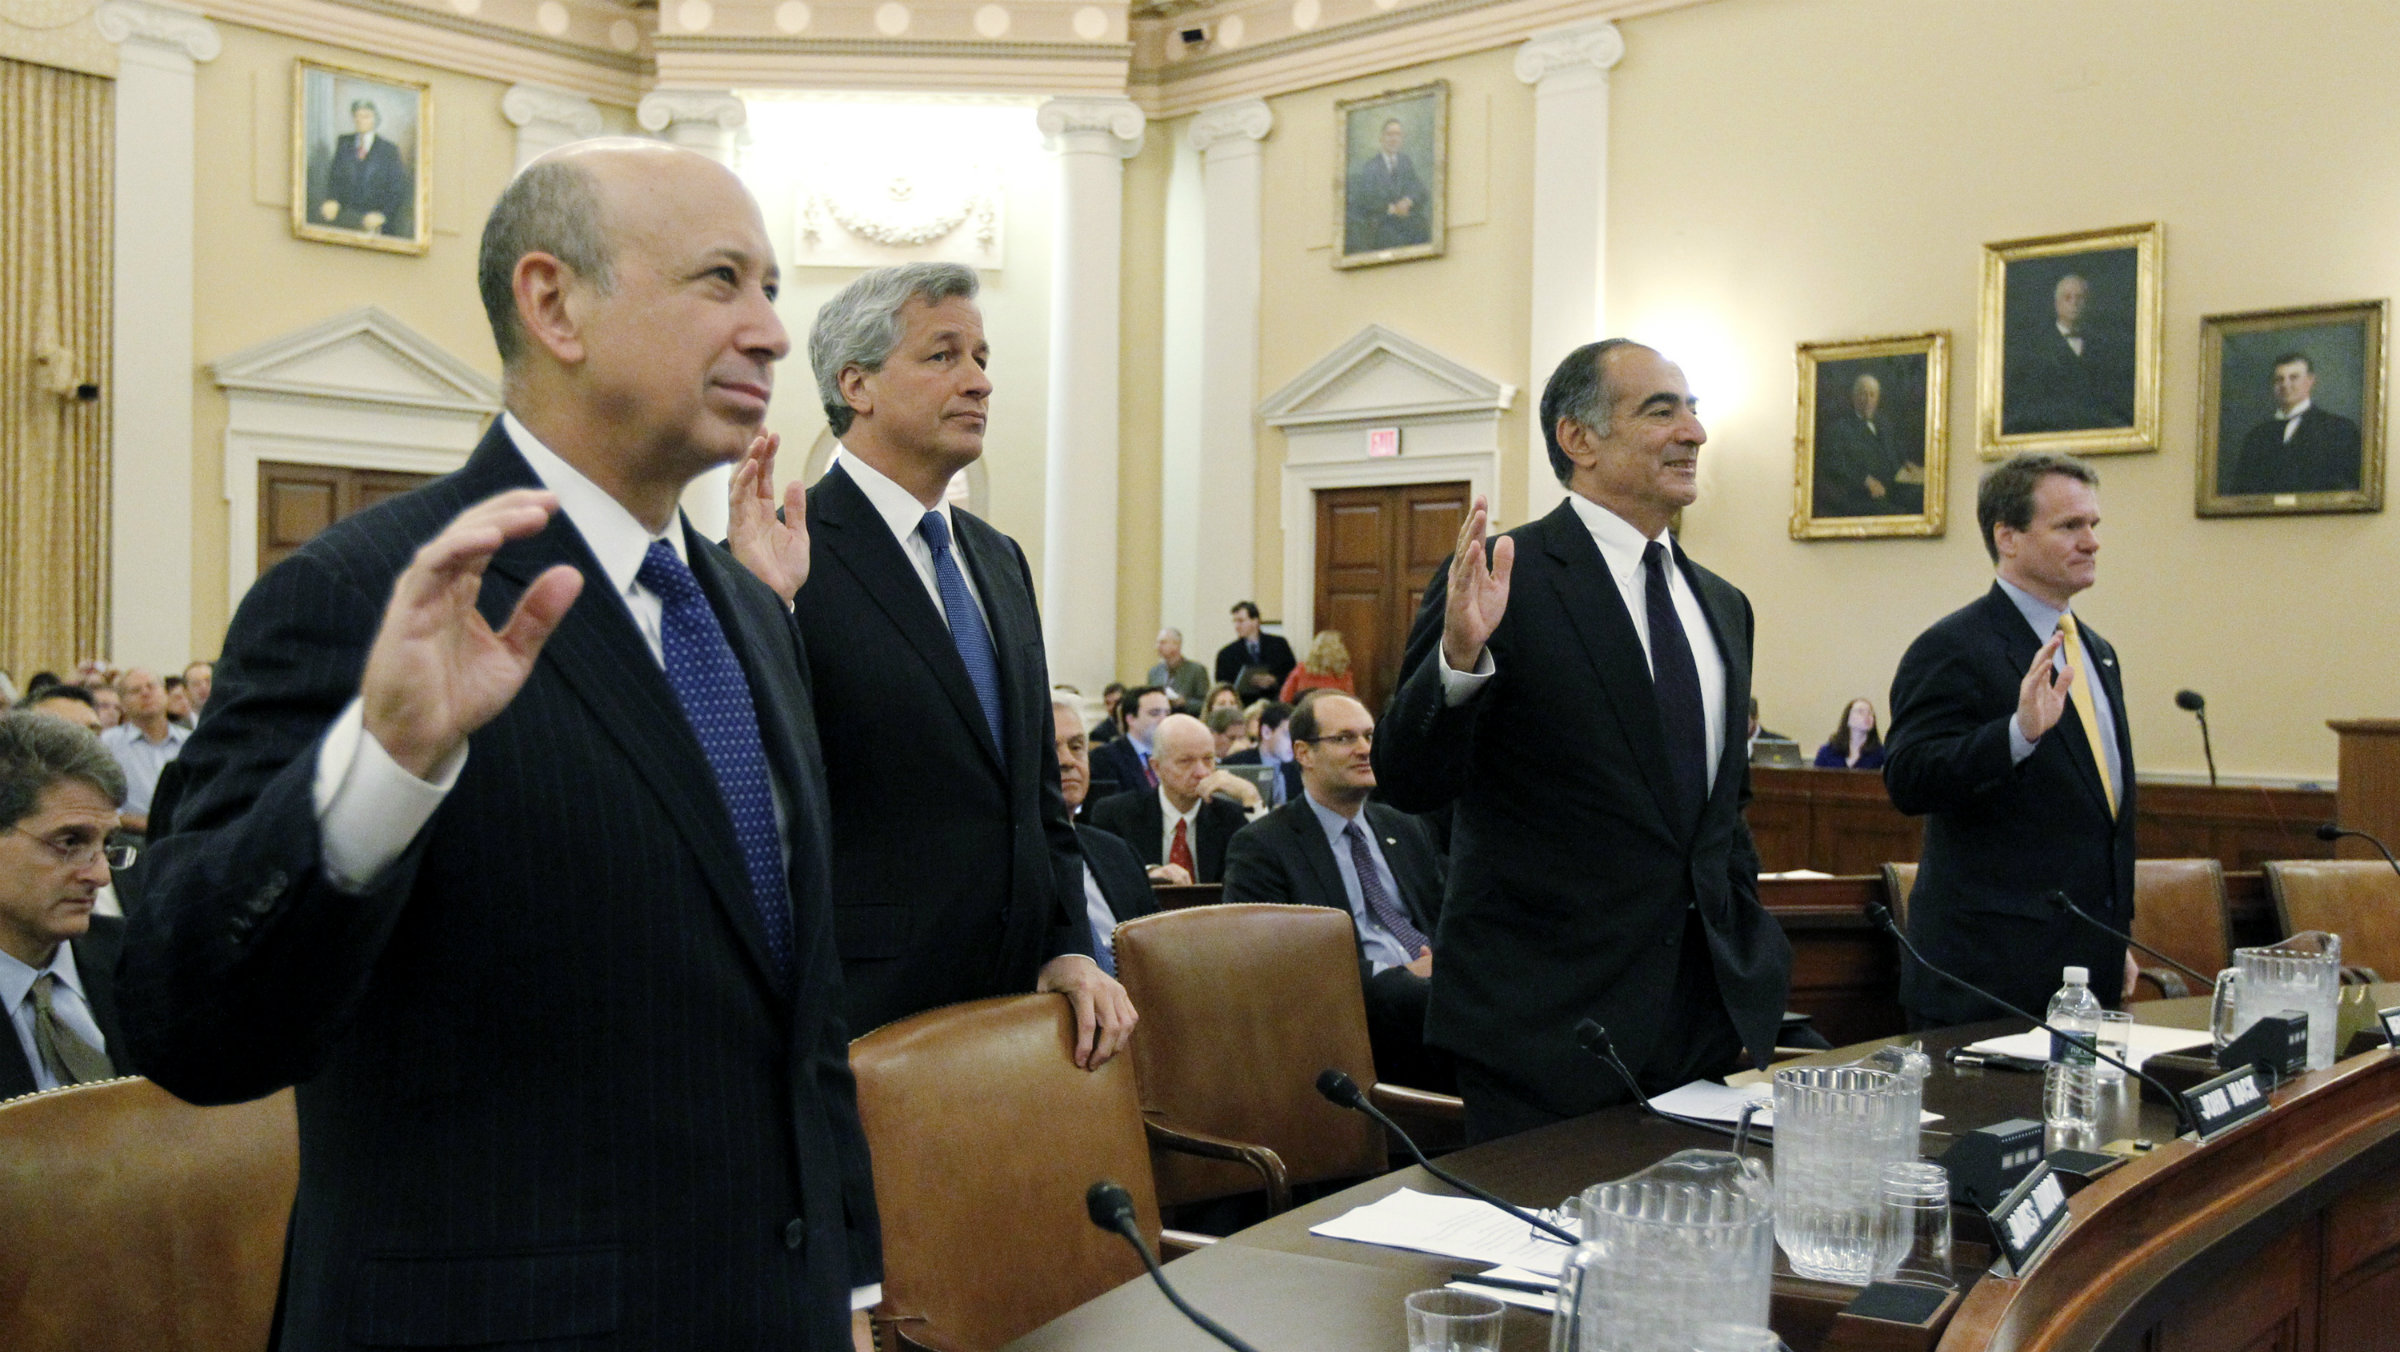 From left to right, Lloyd Blankfein, chief executive of Goldman Sachs Group, Jamie Dimon, chief executive of JPMorgan Chase, John Mack, chairman of Morgan Stanley, and Brian Moynihan, chief executive of Bank of America are sworn in before their testimony at the Financial Crisis Inquiry Commission (FCIC) and its first public hearing in Washington January 13, 2010.